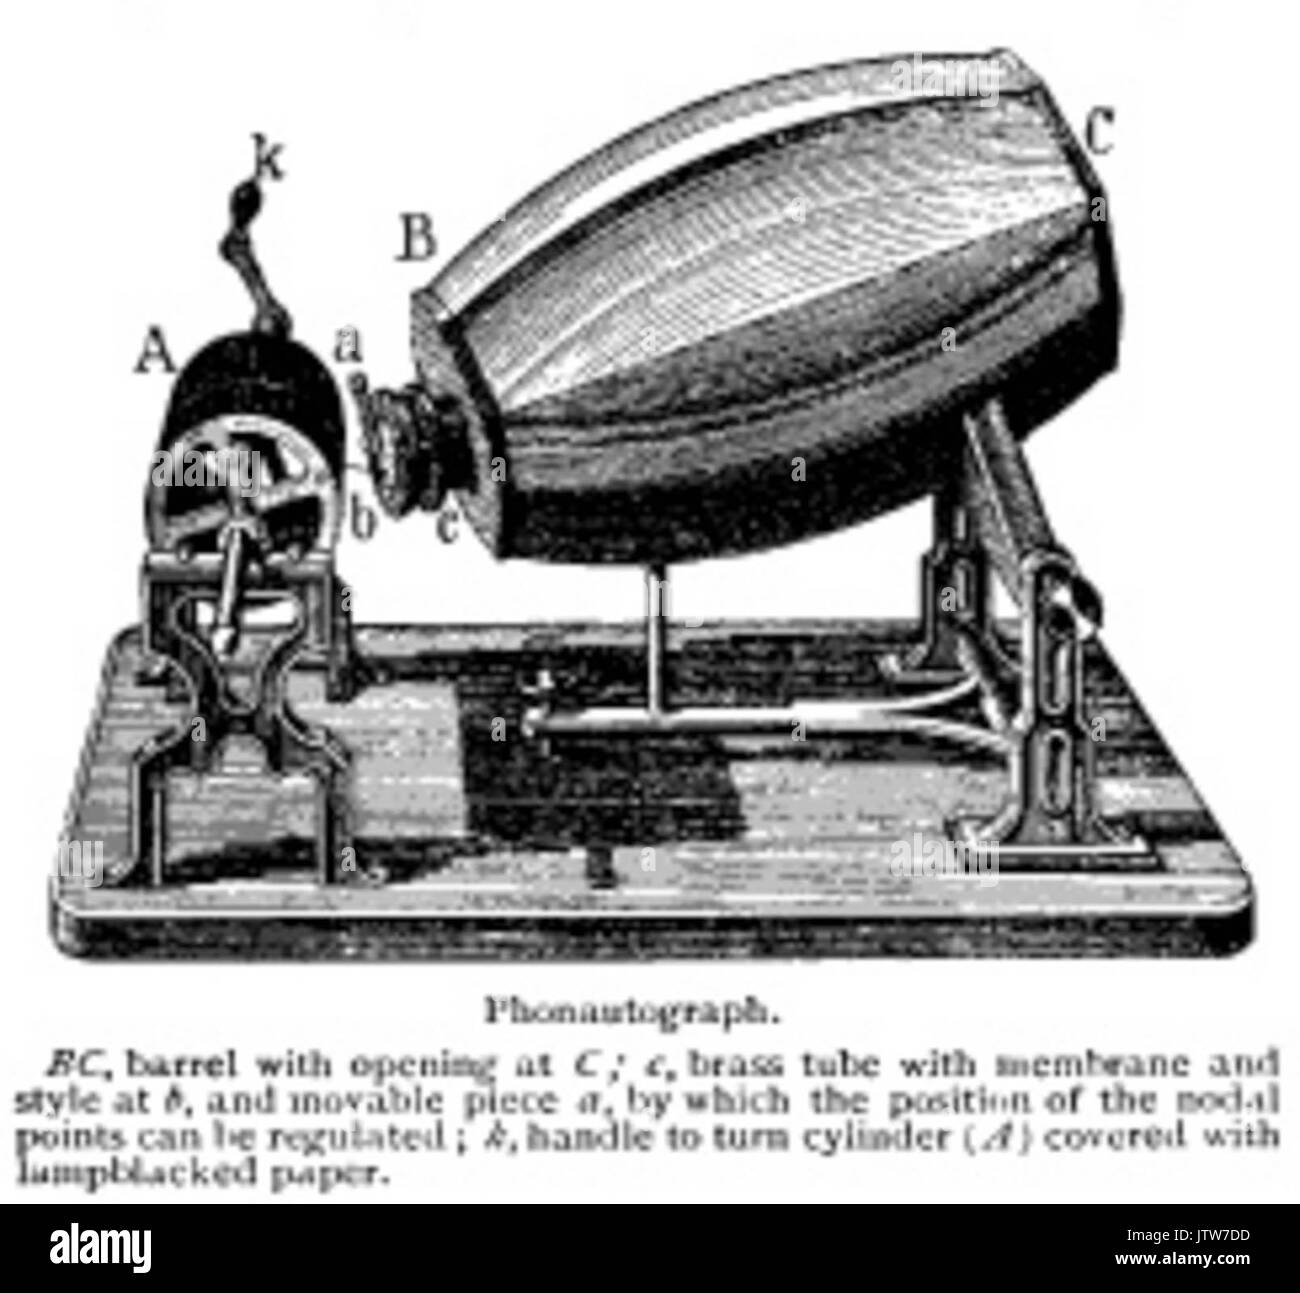 illustration of a phonautograph. This version uses a barrel made of plaster of Paris - Stock Image